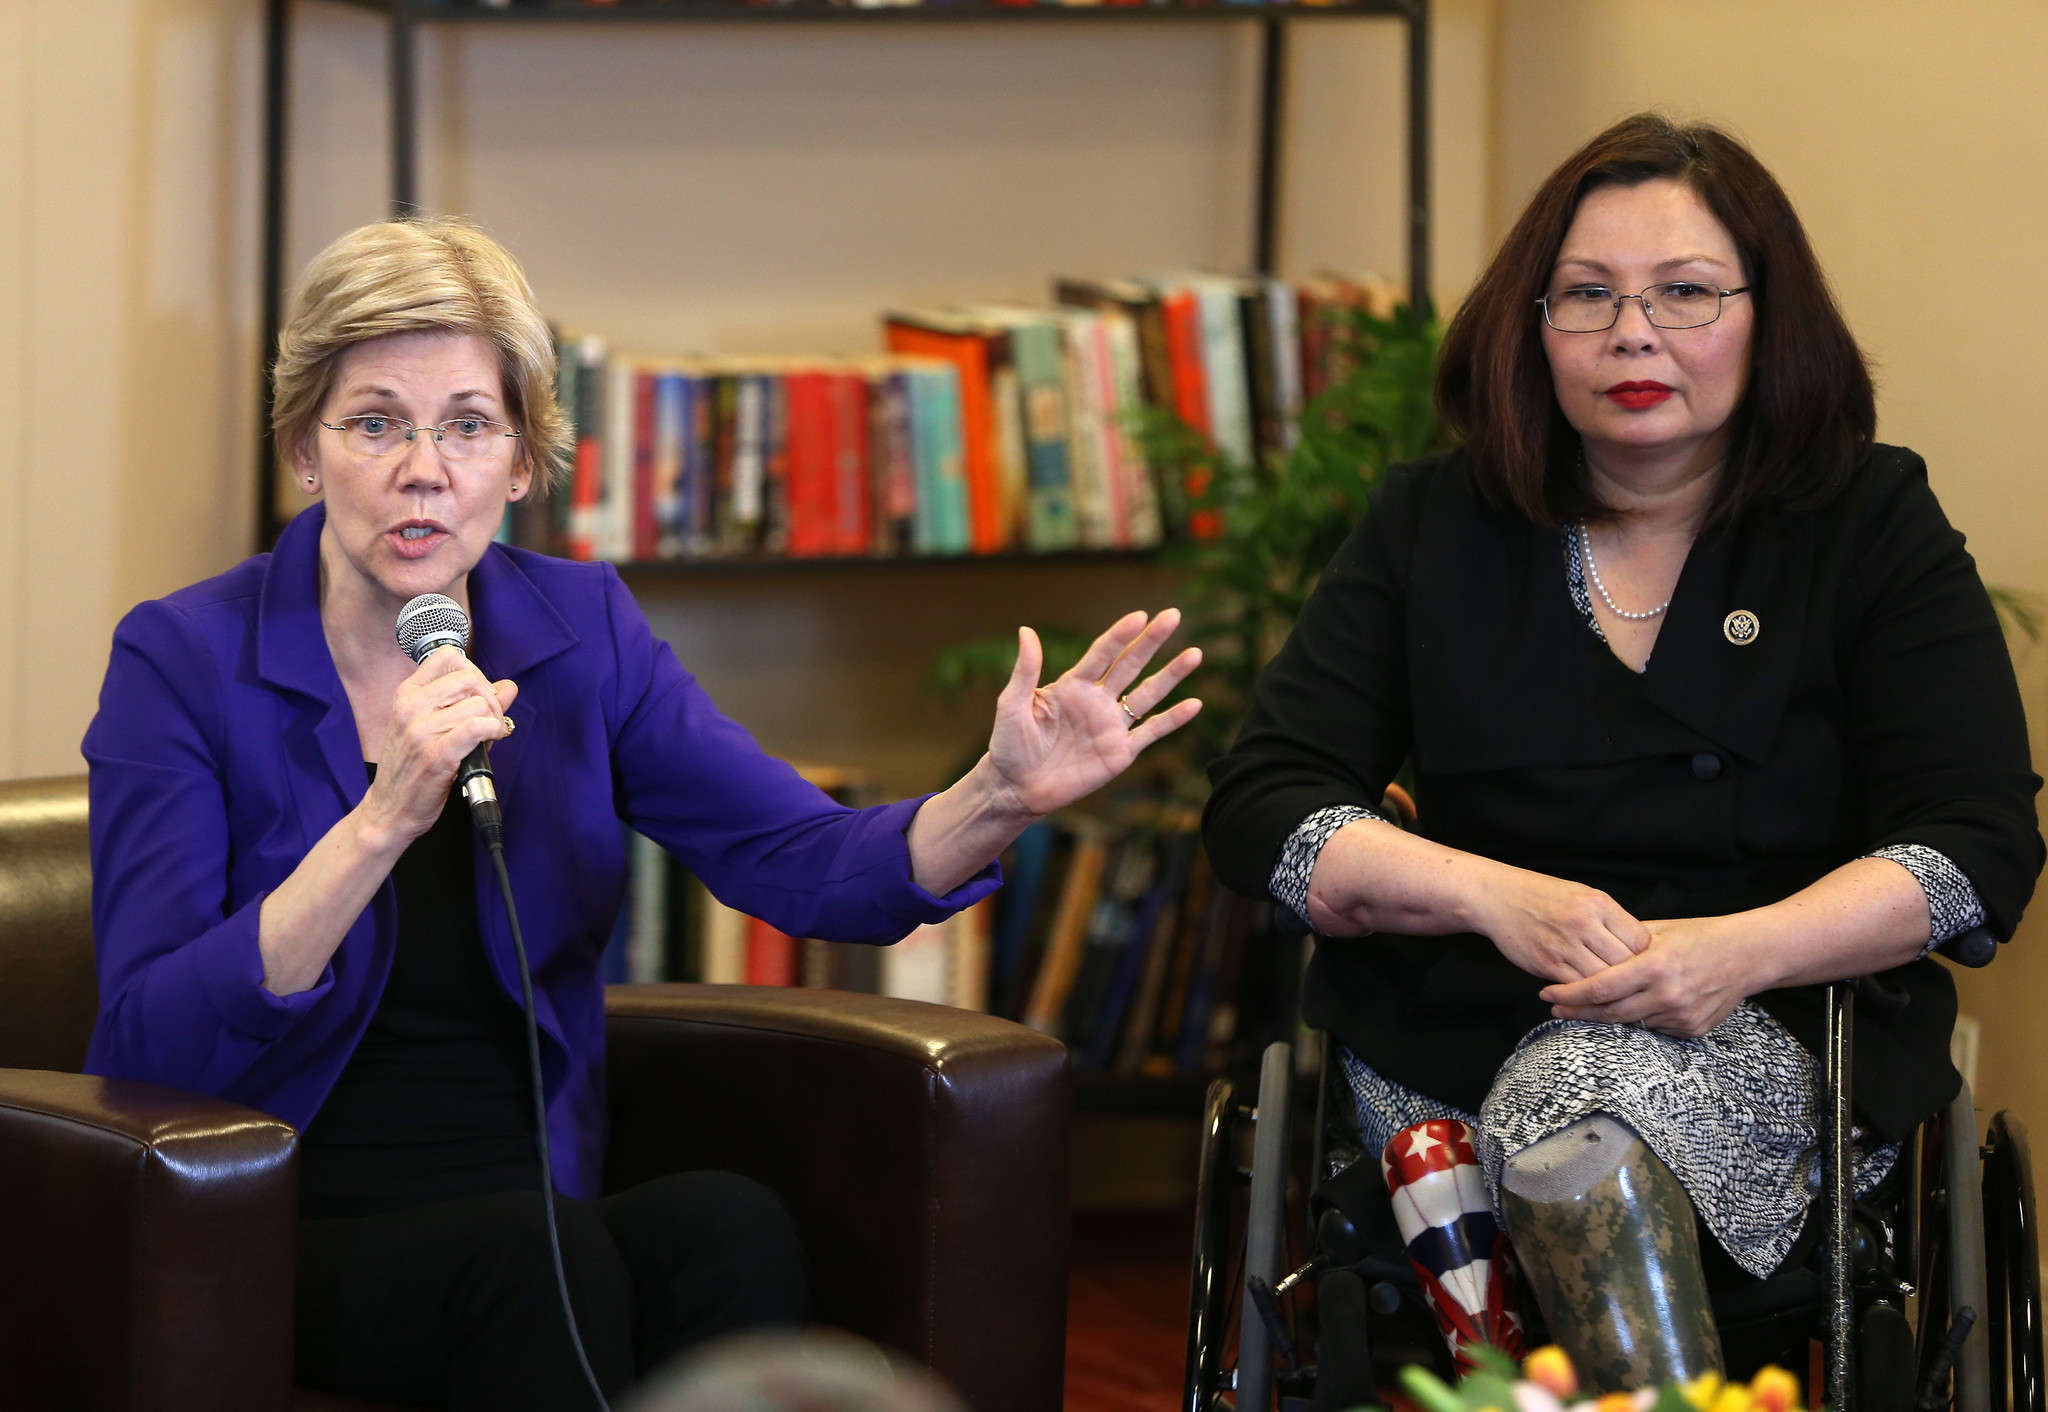 http://www.trbimg.com/img-5723ebc2/turbine/ct-tammy-duckworth-elizabeth-warren-met-0429-20160429